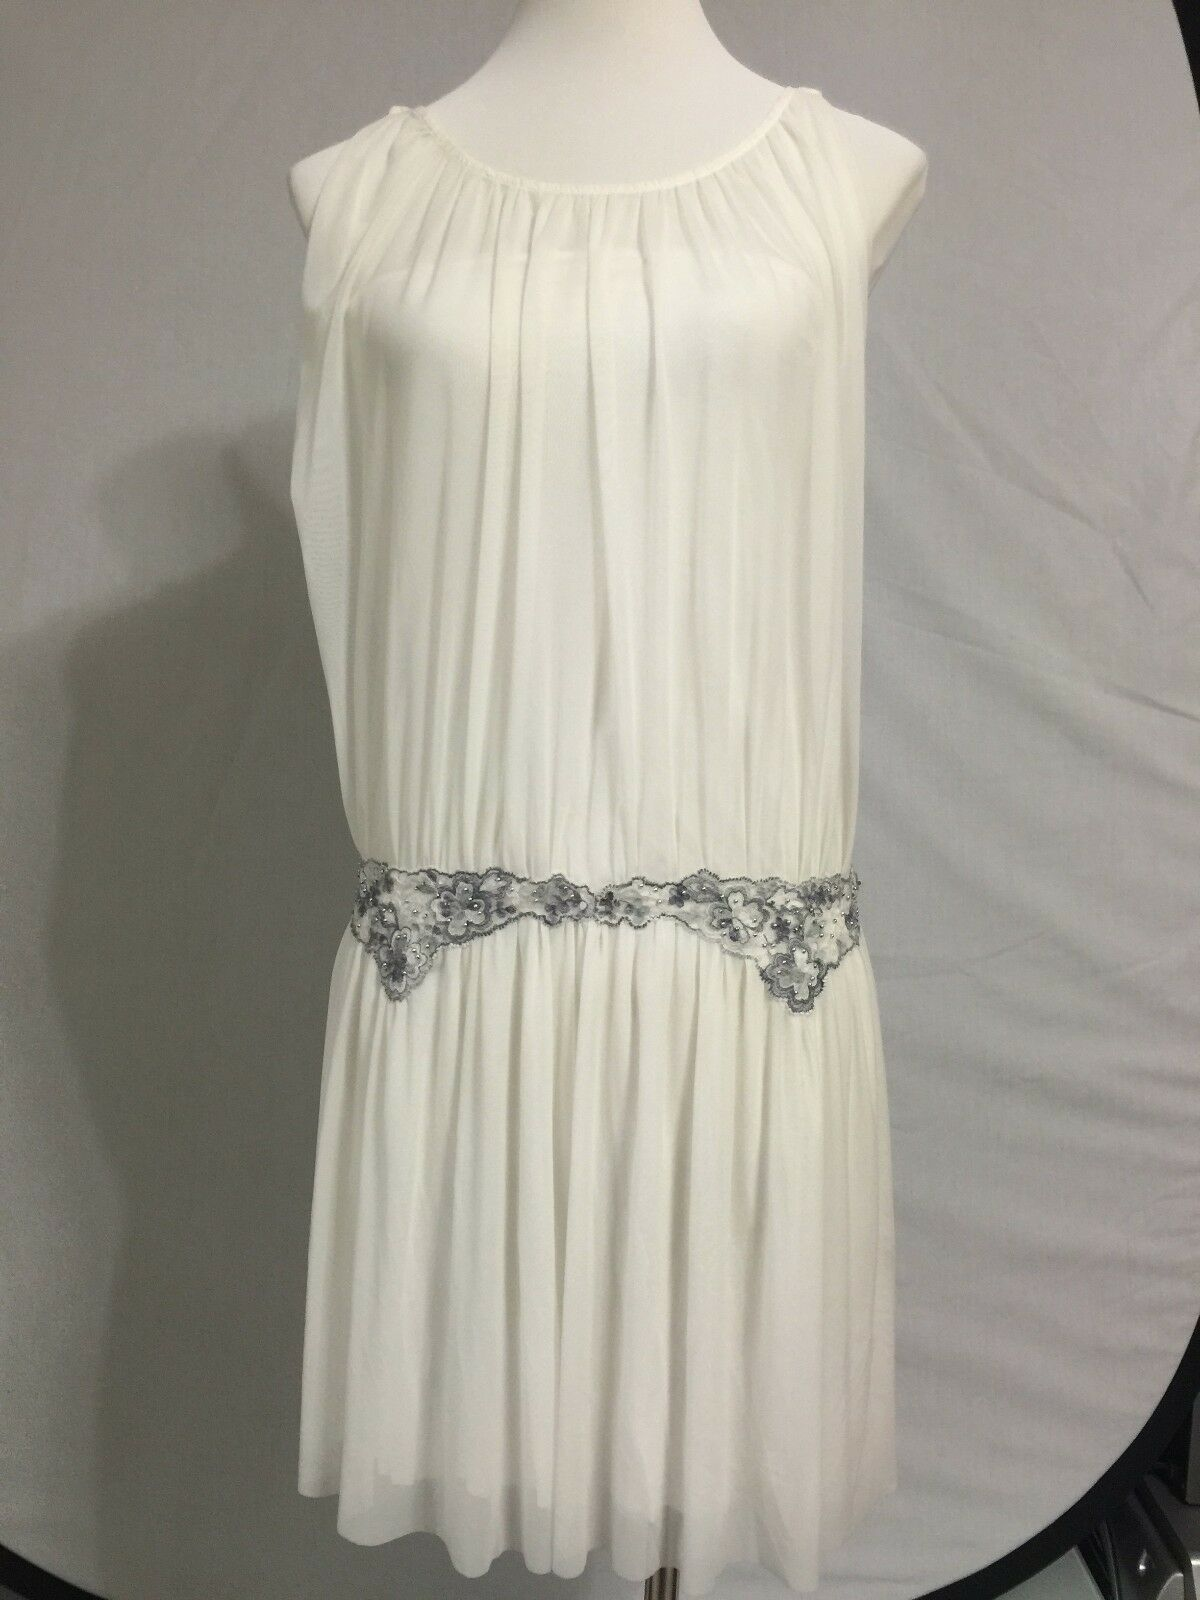 NEW Free People Weiß Sheer Gauzy Embroiderot Dress Sundress Summer S 4-6